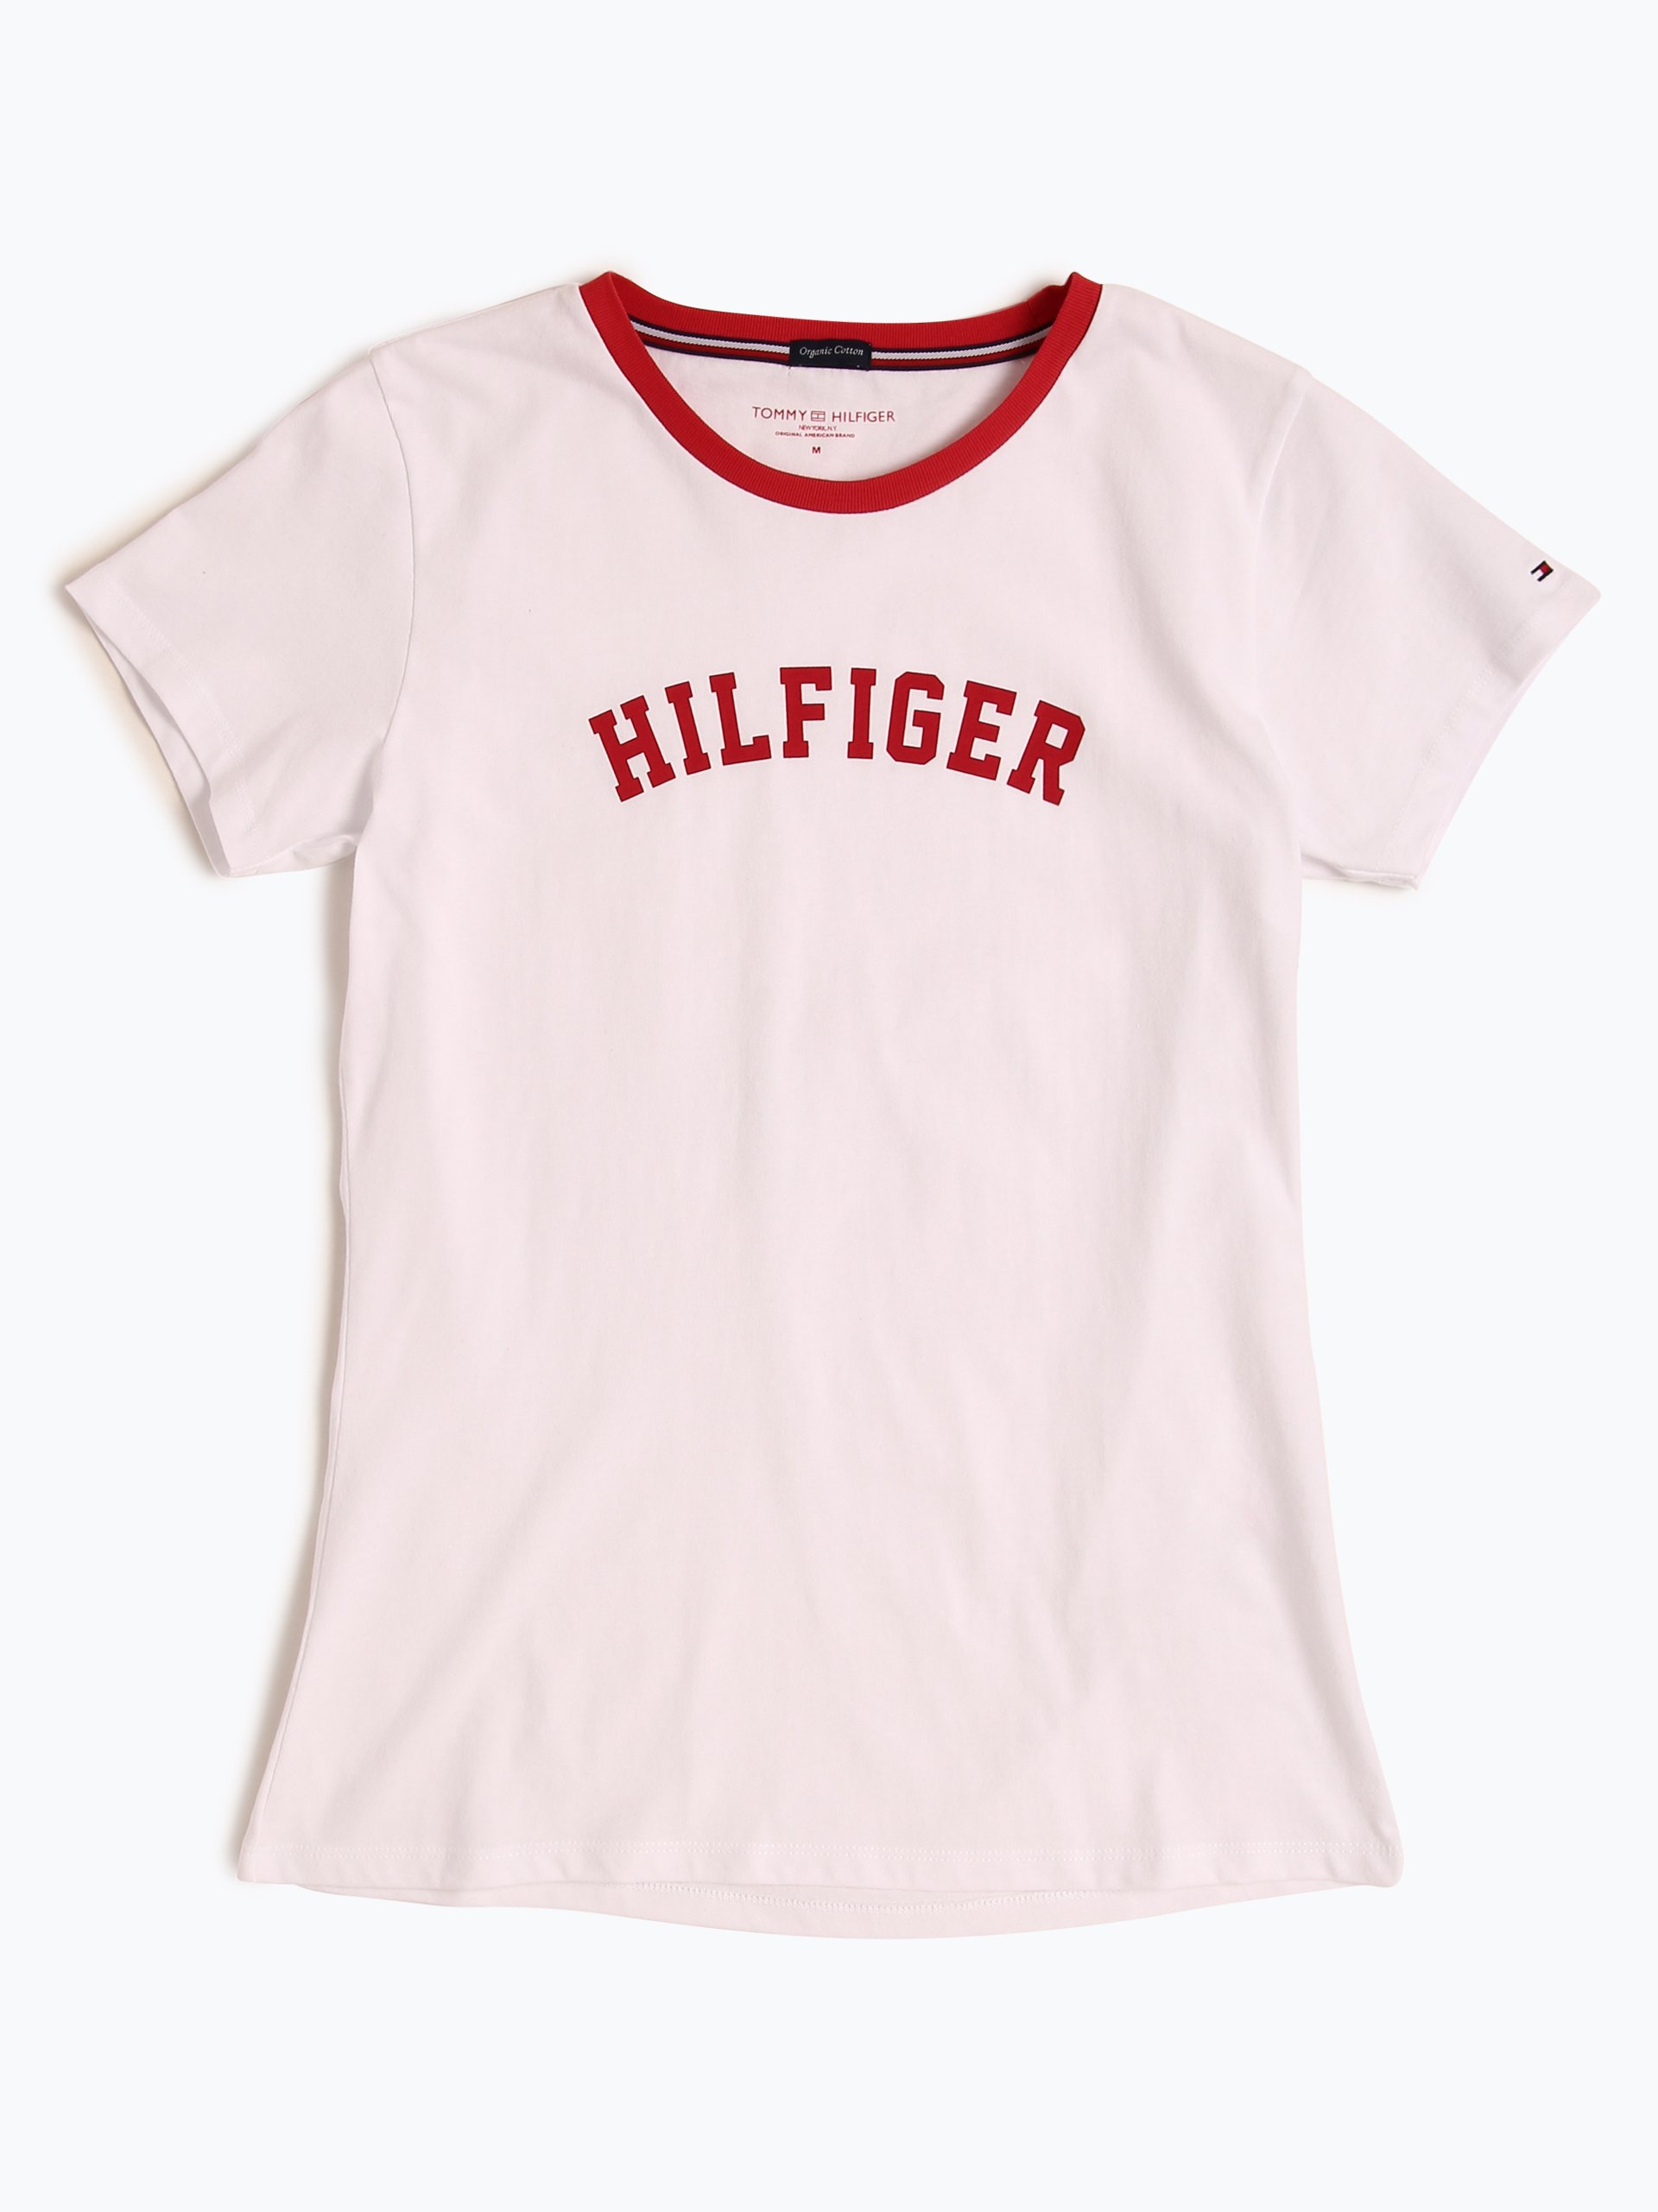 tommy hilfiger damen pyjama shirt 2 online kaufen peek und cloppenburg de. Black Bedroom Furniture Sets. Home Design Ideas